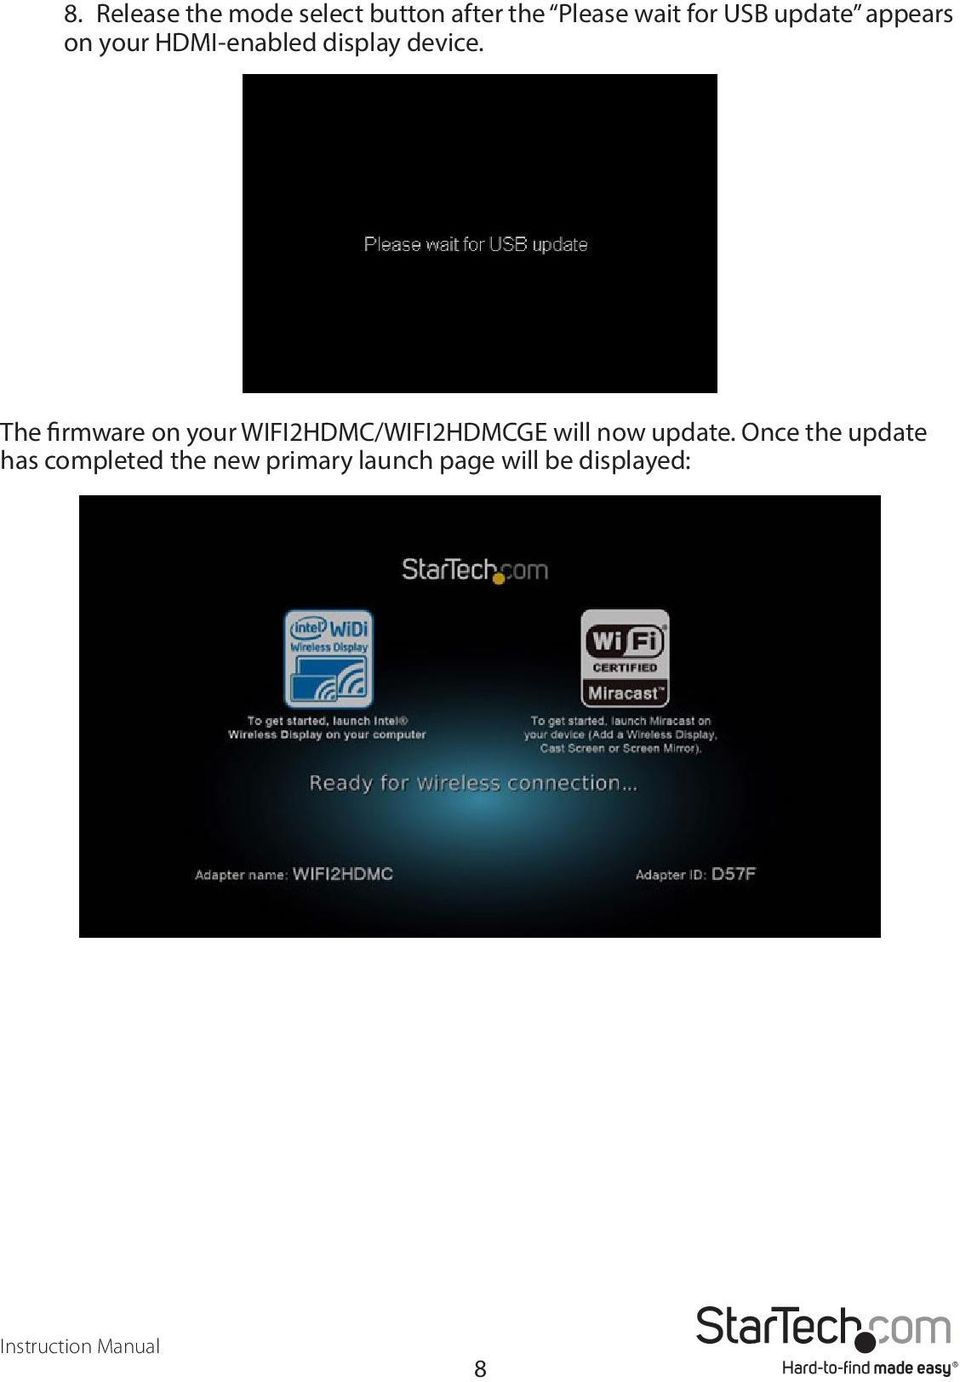 The firmware on your WIFI2HDMC/WIFI2HDMCGE will now update.